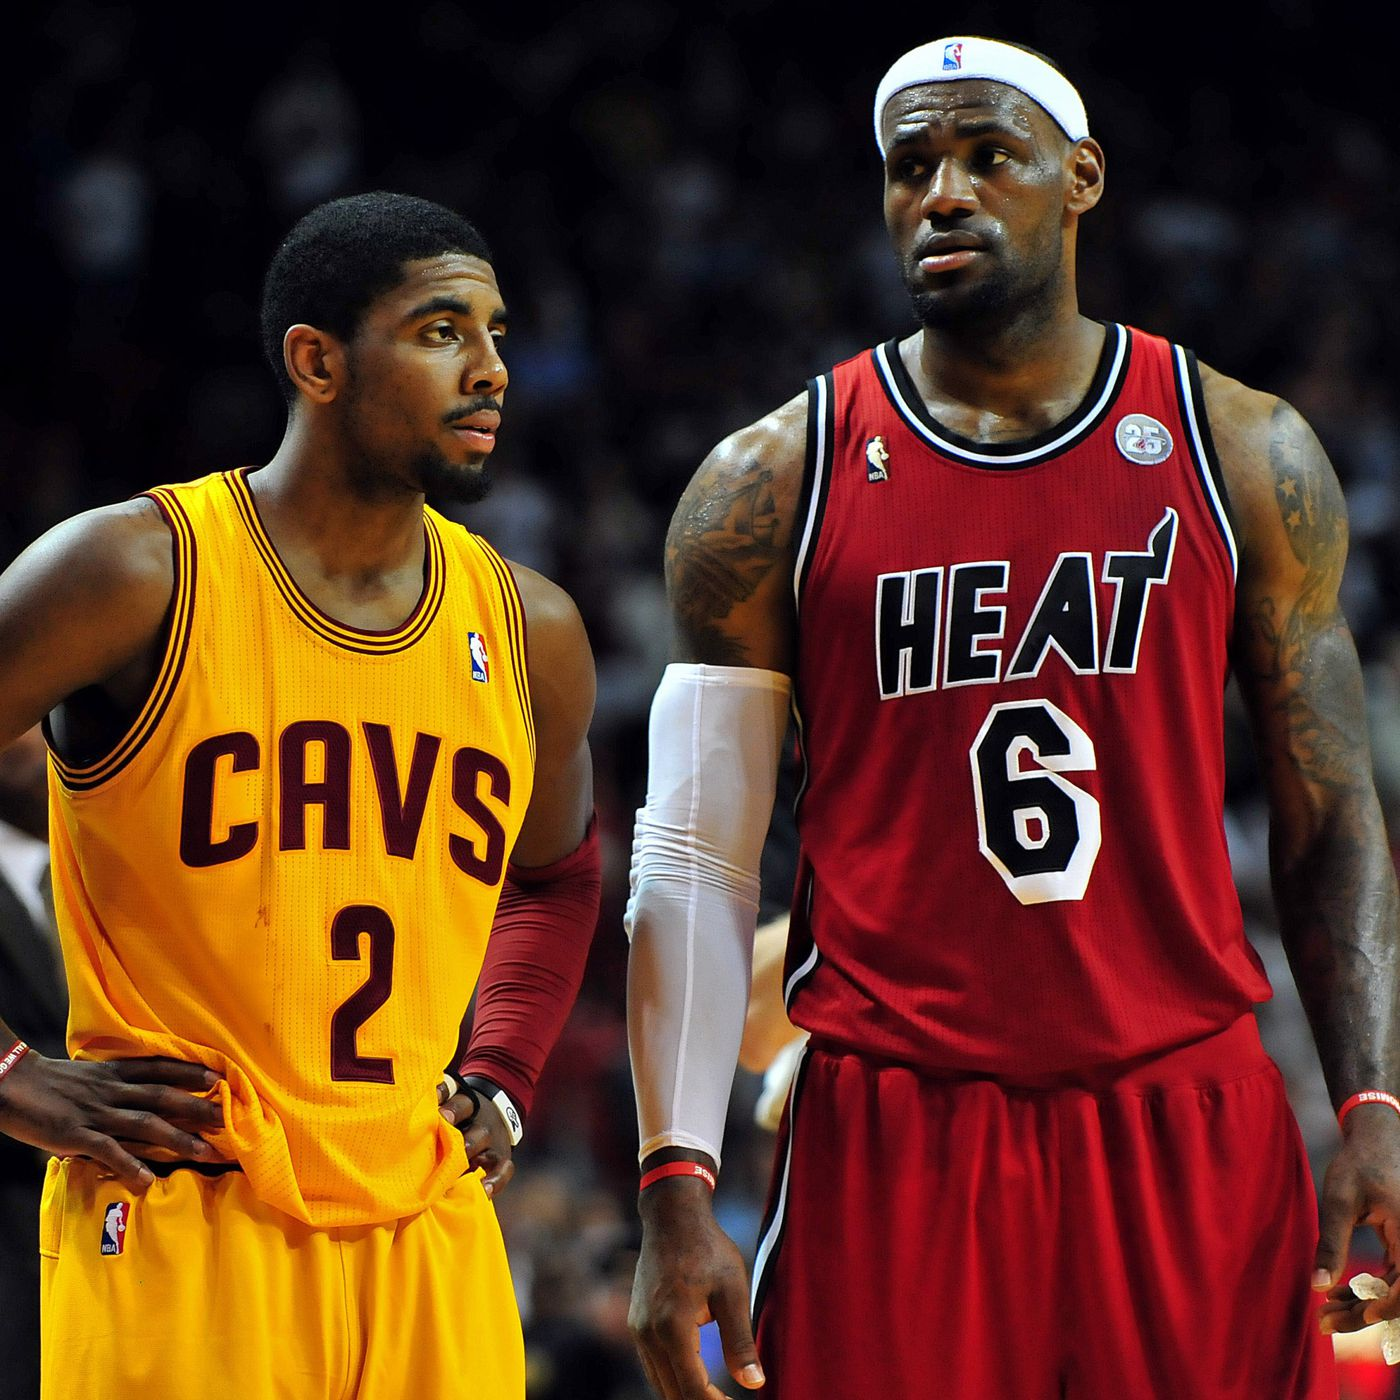 Cleveland Cavaliers Vs Miami Heat Let S Talk About Lebron James And Stuff Fear The Sword